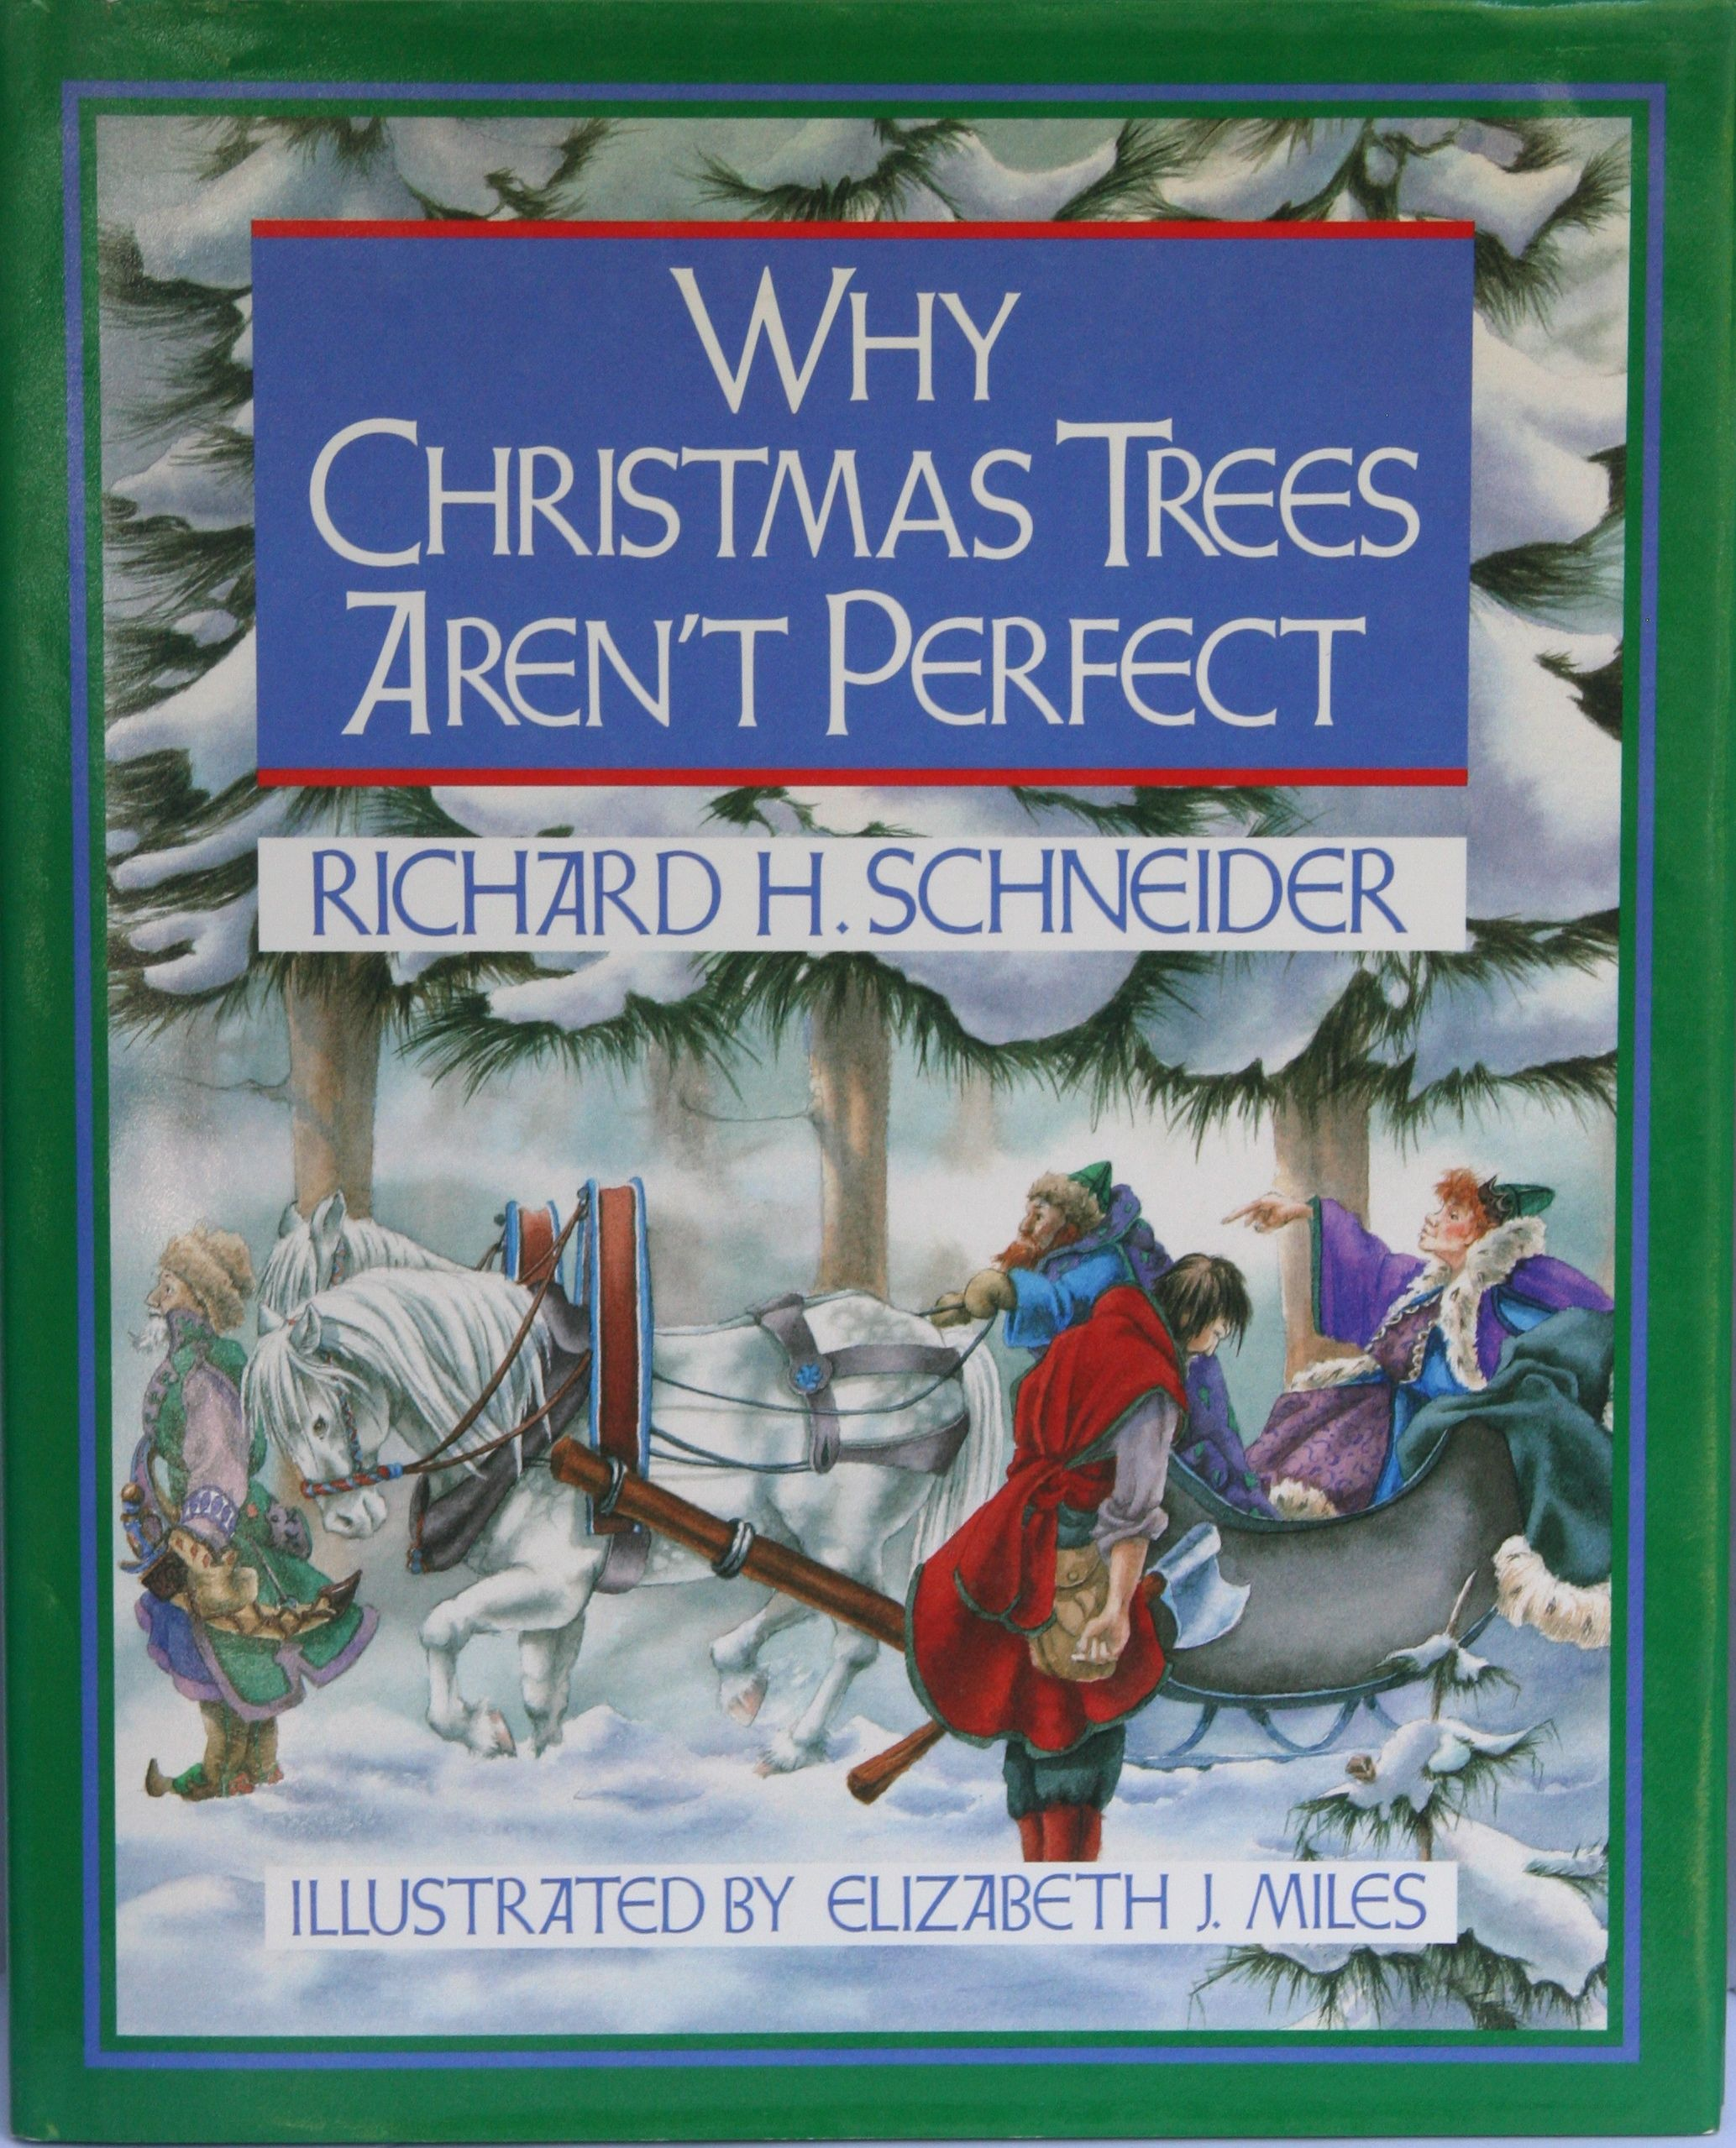 Why Christmas Trees Arent Perfect.Why Christmas Trees Aren T Perfect By Richard H Schneider